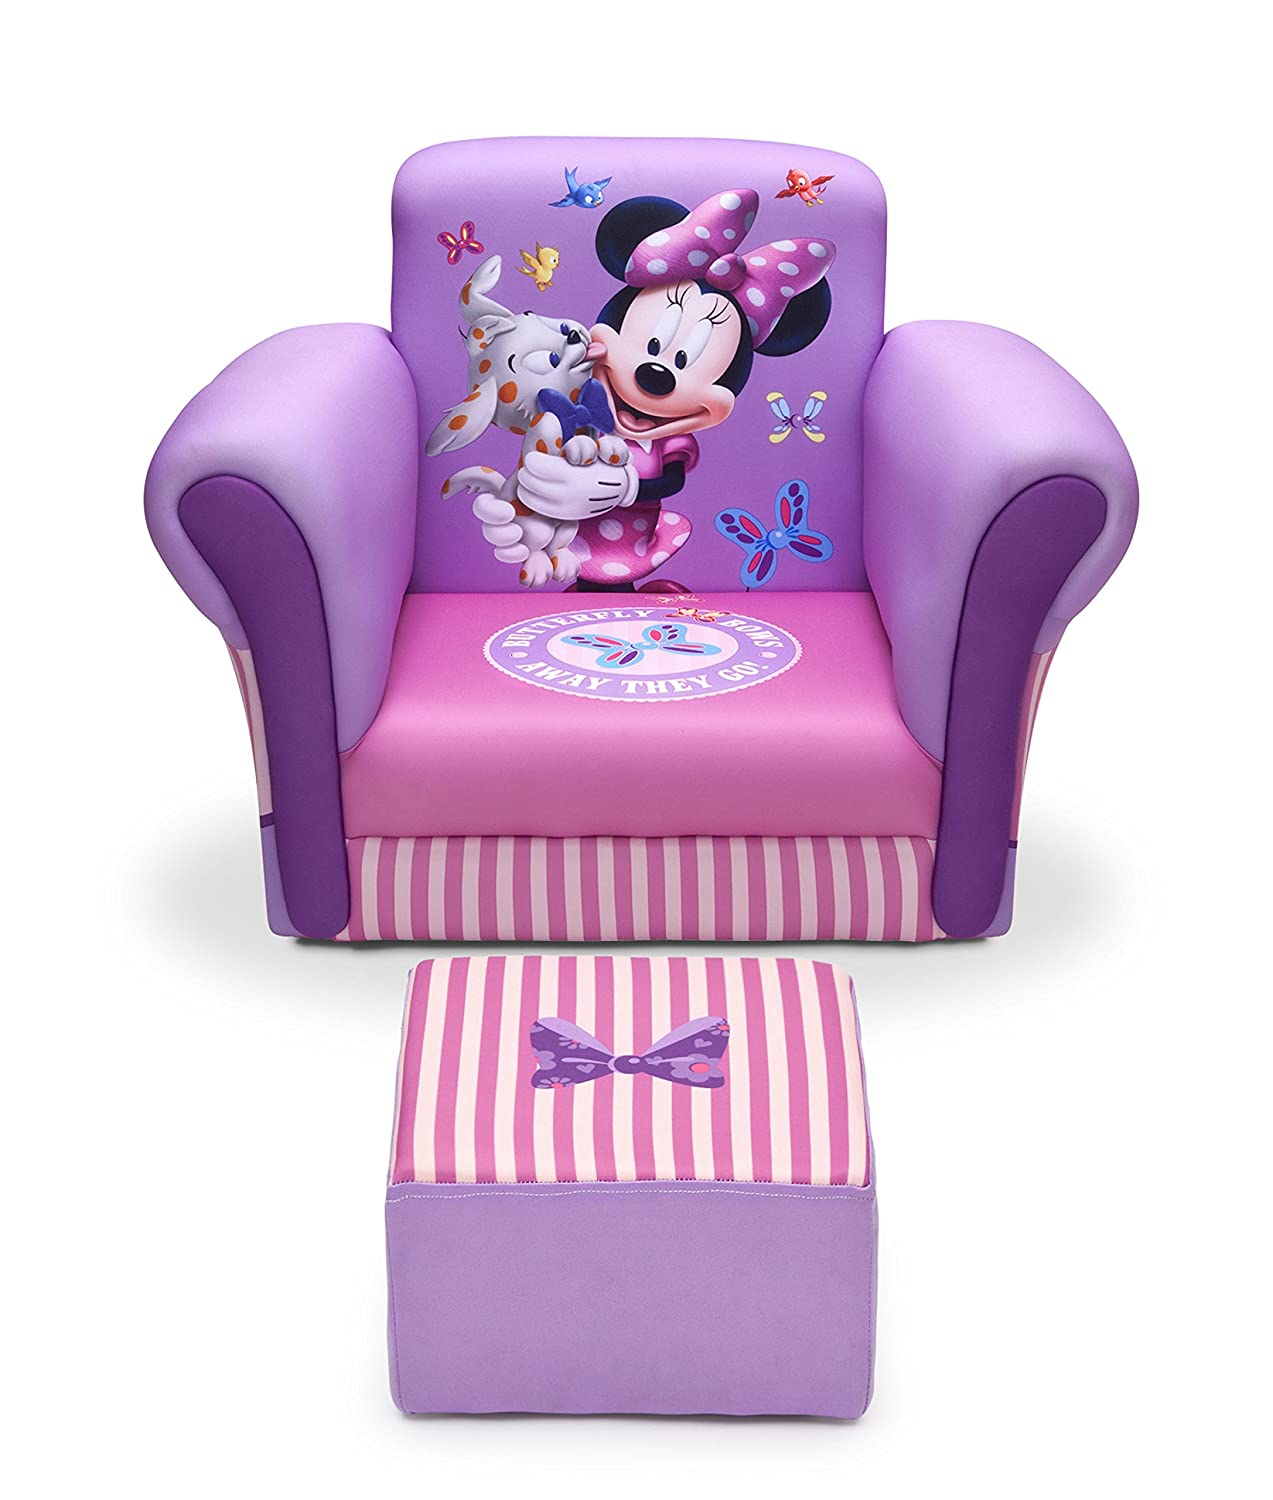 amazoncom delta children upholstered chair with ottoman disney minnie mouse baby